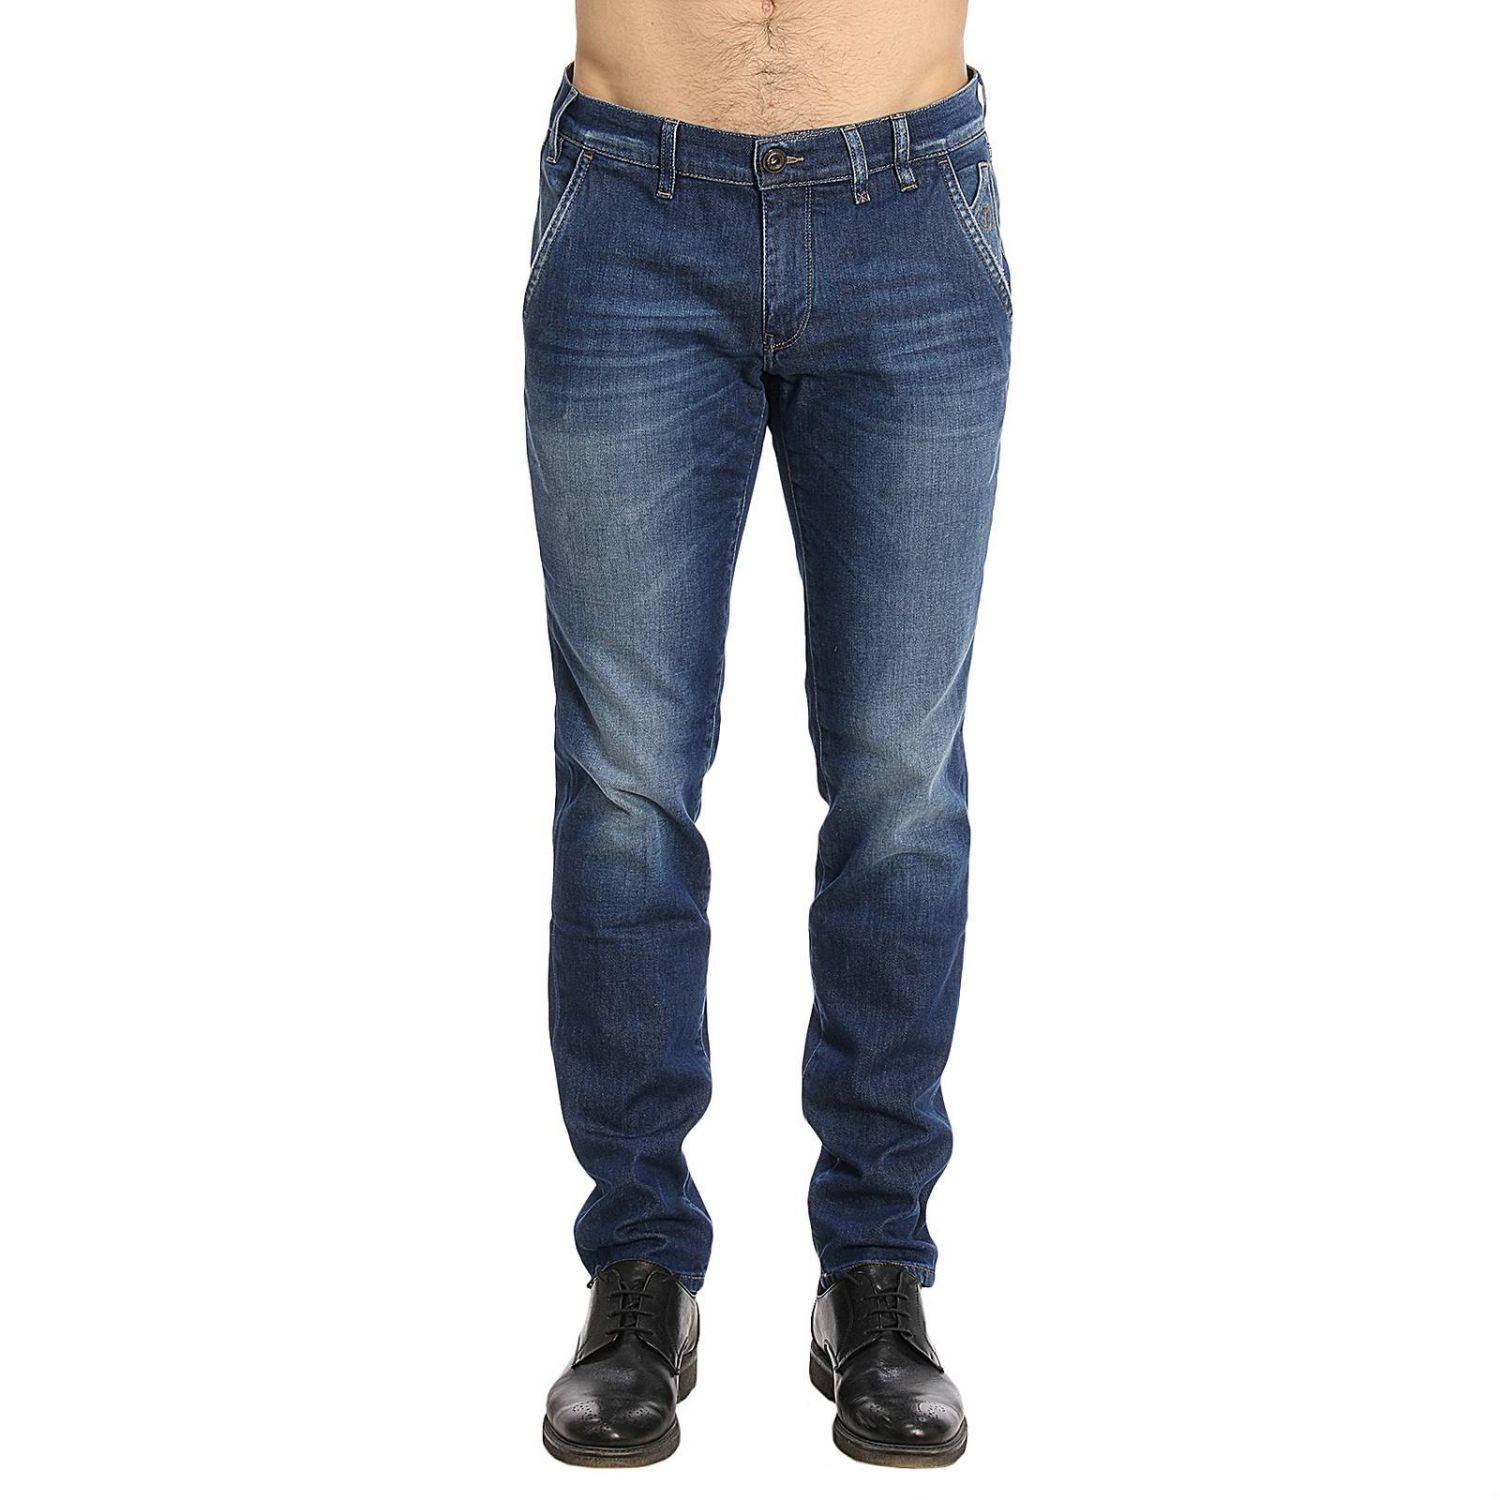 Jeans Jeans Men Jeckerson 8351698